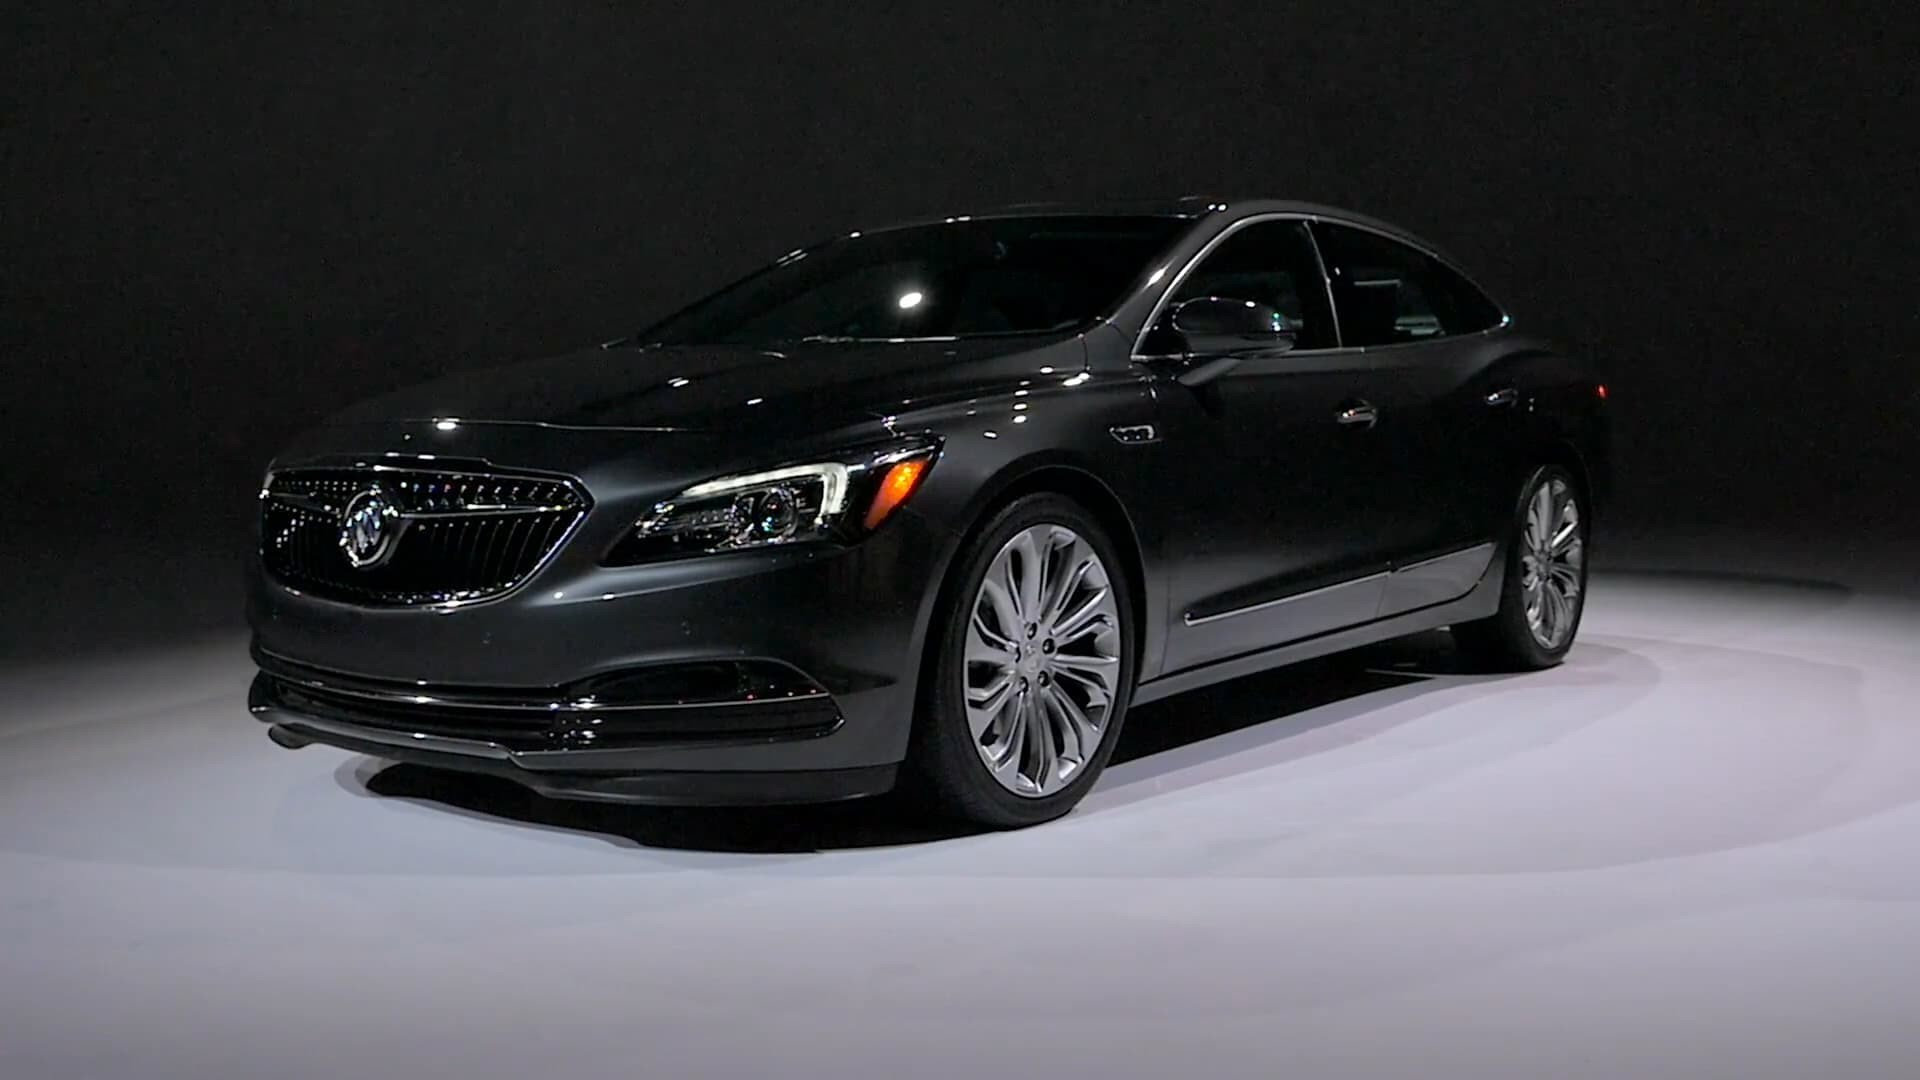 Res: 1920x1080, Buick LaCrosse Wallpaper 2 - 1920 X 1080